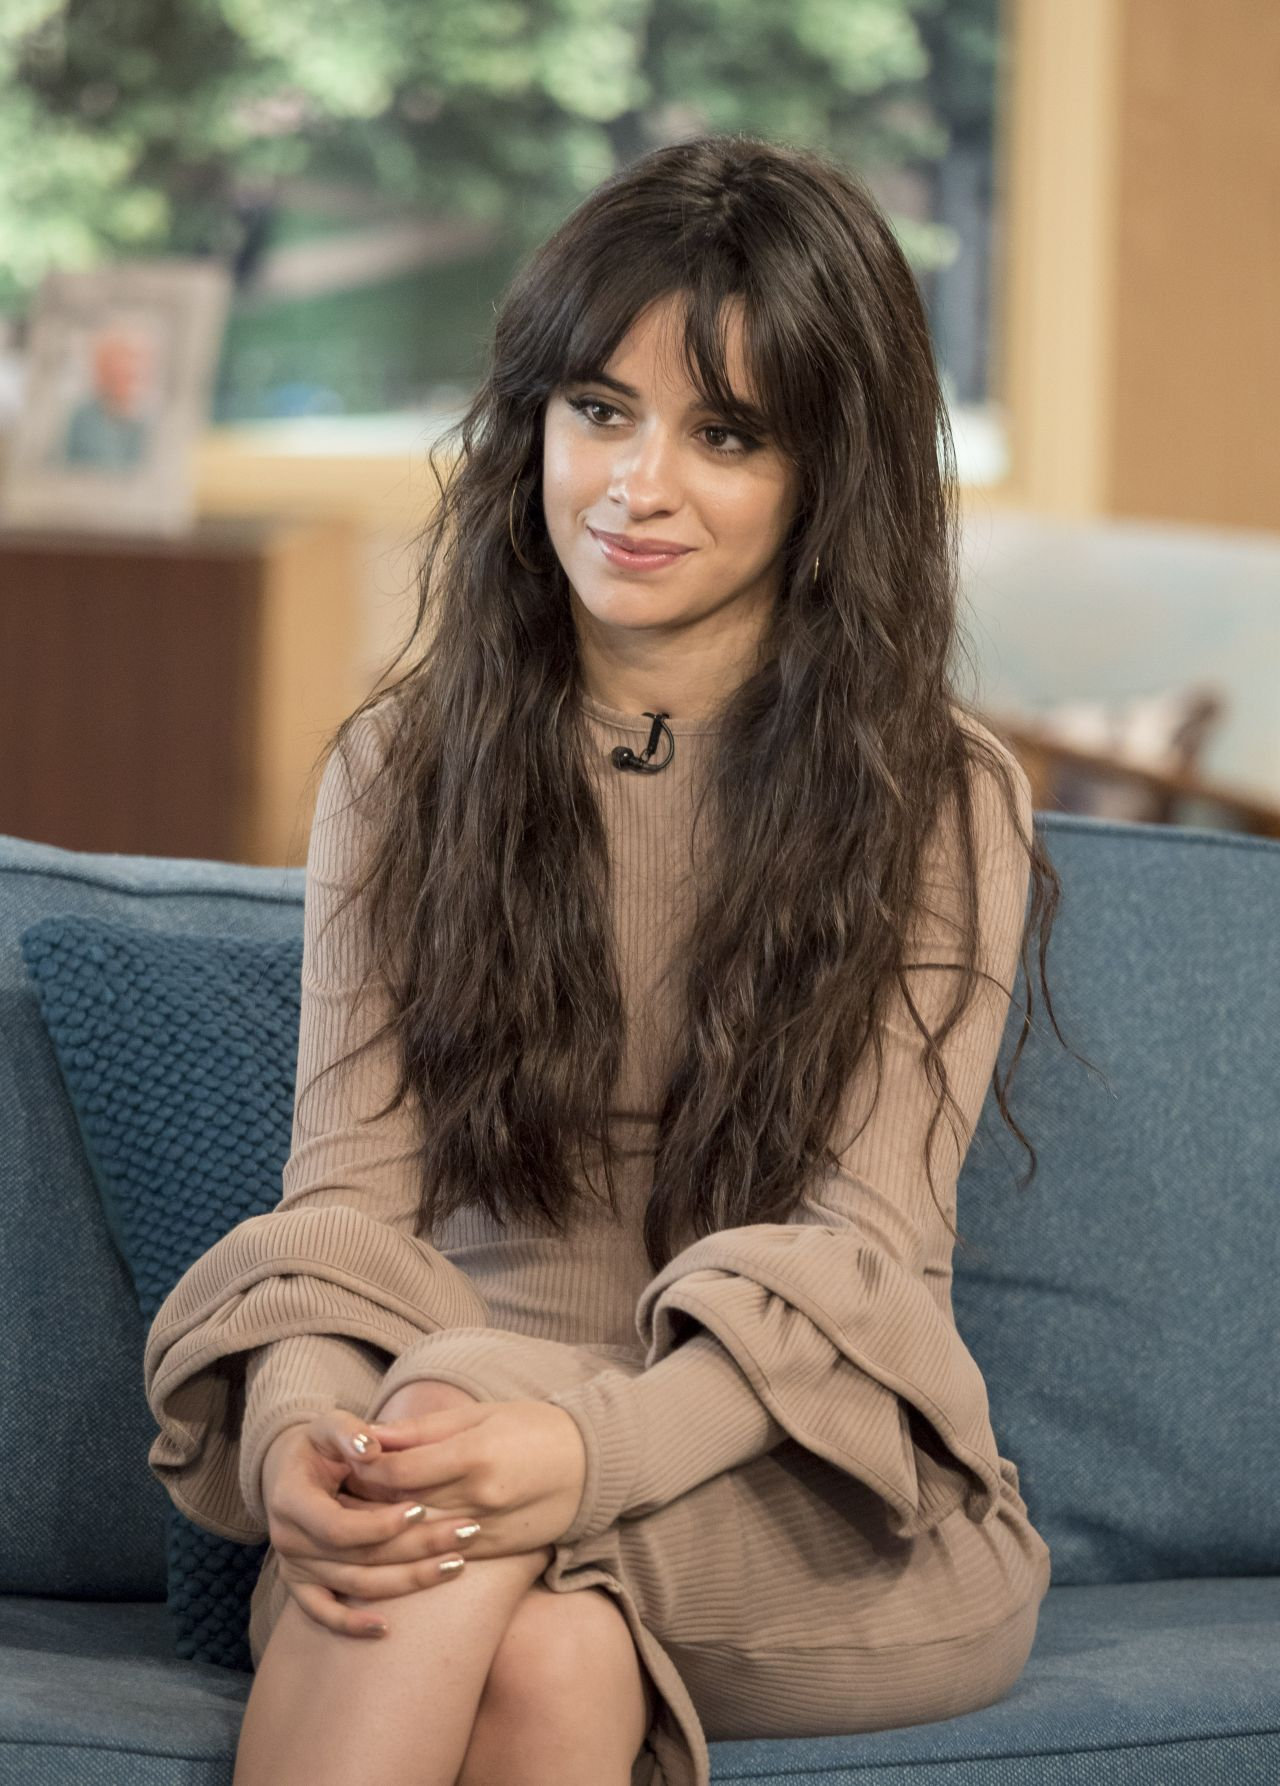 Camila Cabello Appeared On This Morning TV Show In